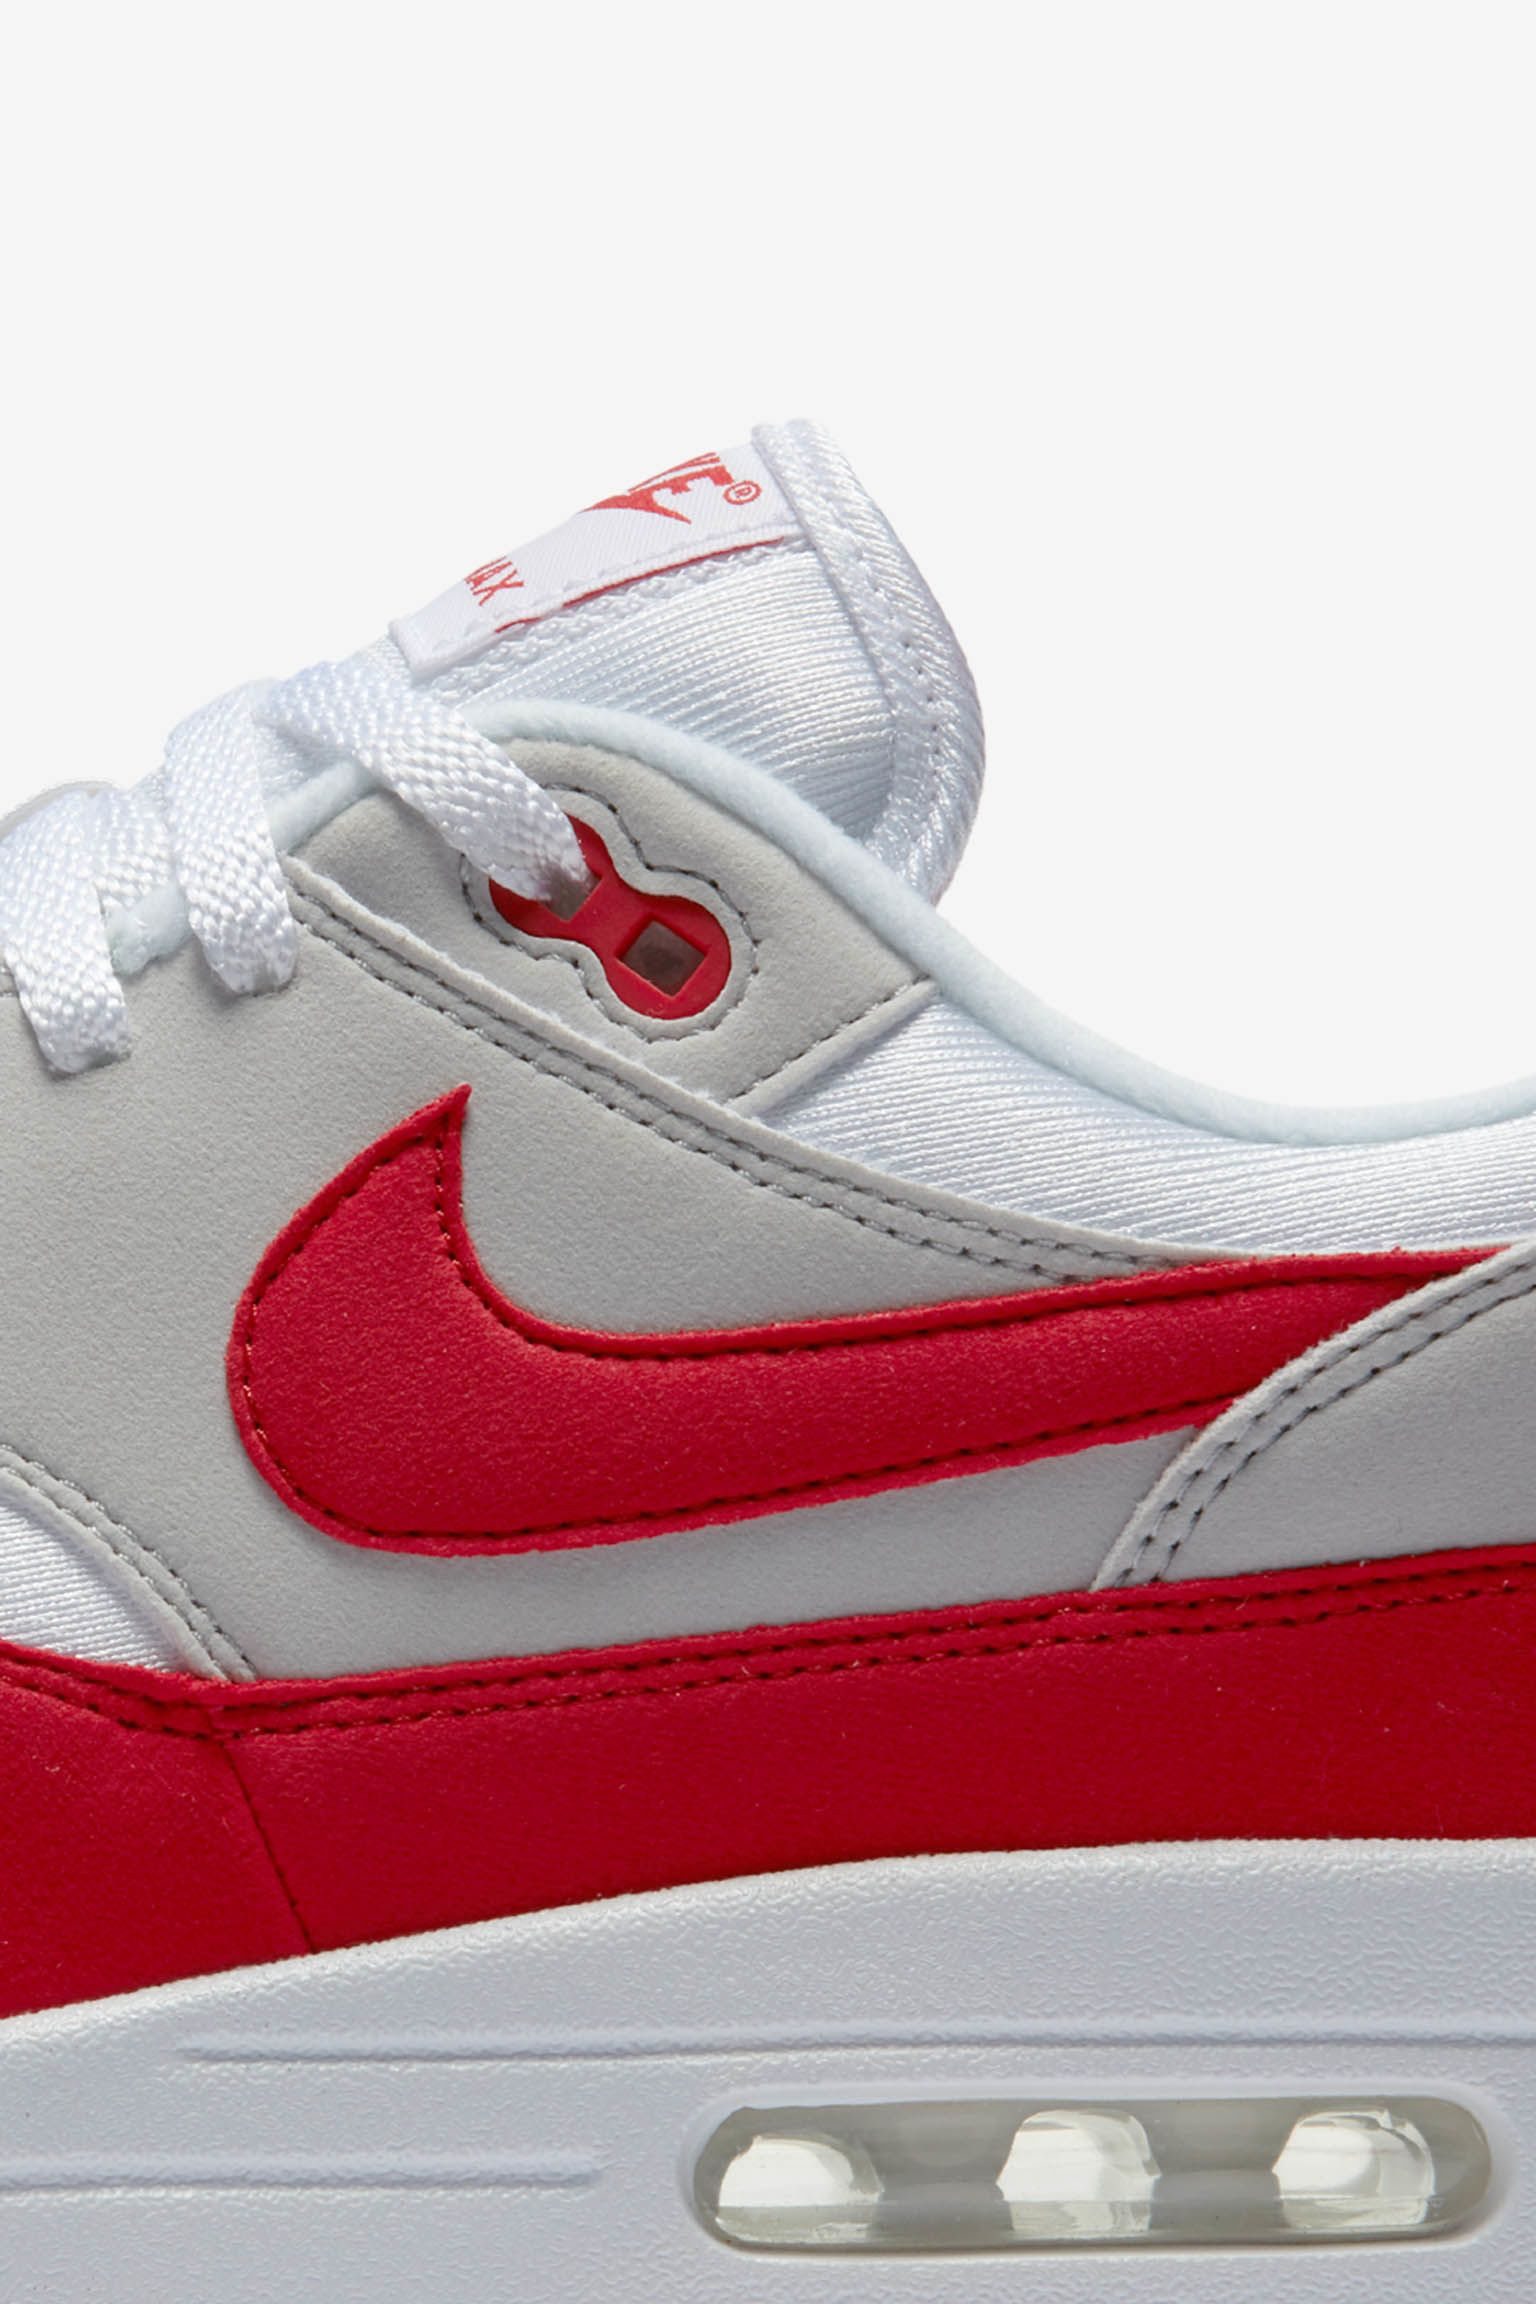 great fit classic fit official photos release date nike air max one red b4cba dc539